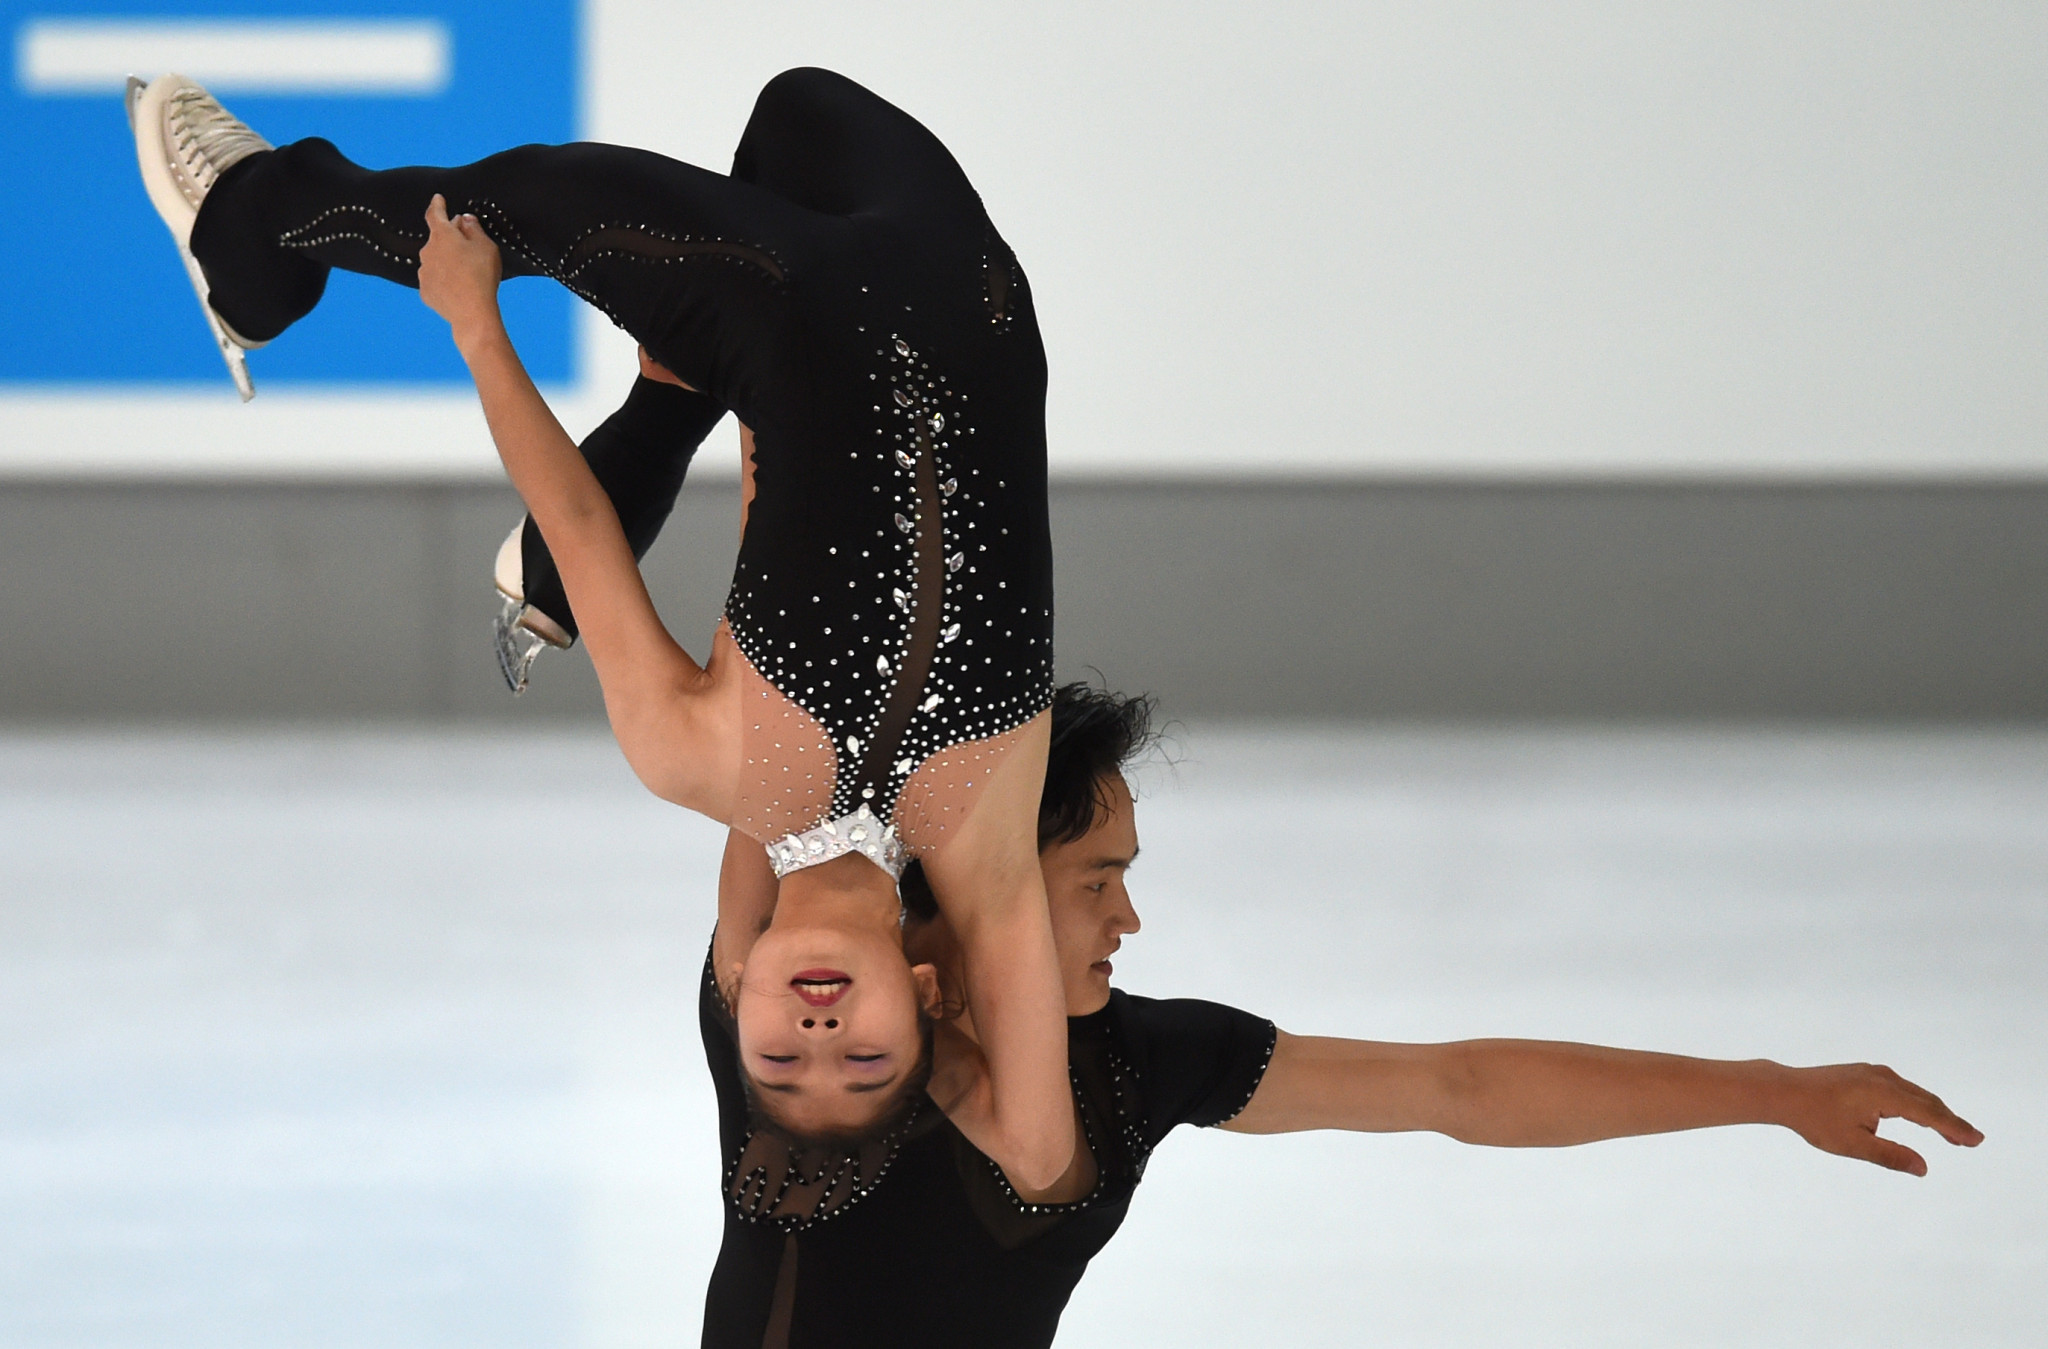 North Korea's Ryom Tae-Ok and Kim Ju-Sik are expected to compete in figure skating at Pyeongchang 2018 ©Getty Images